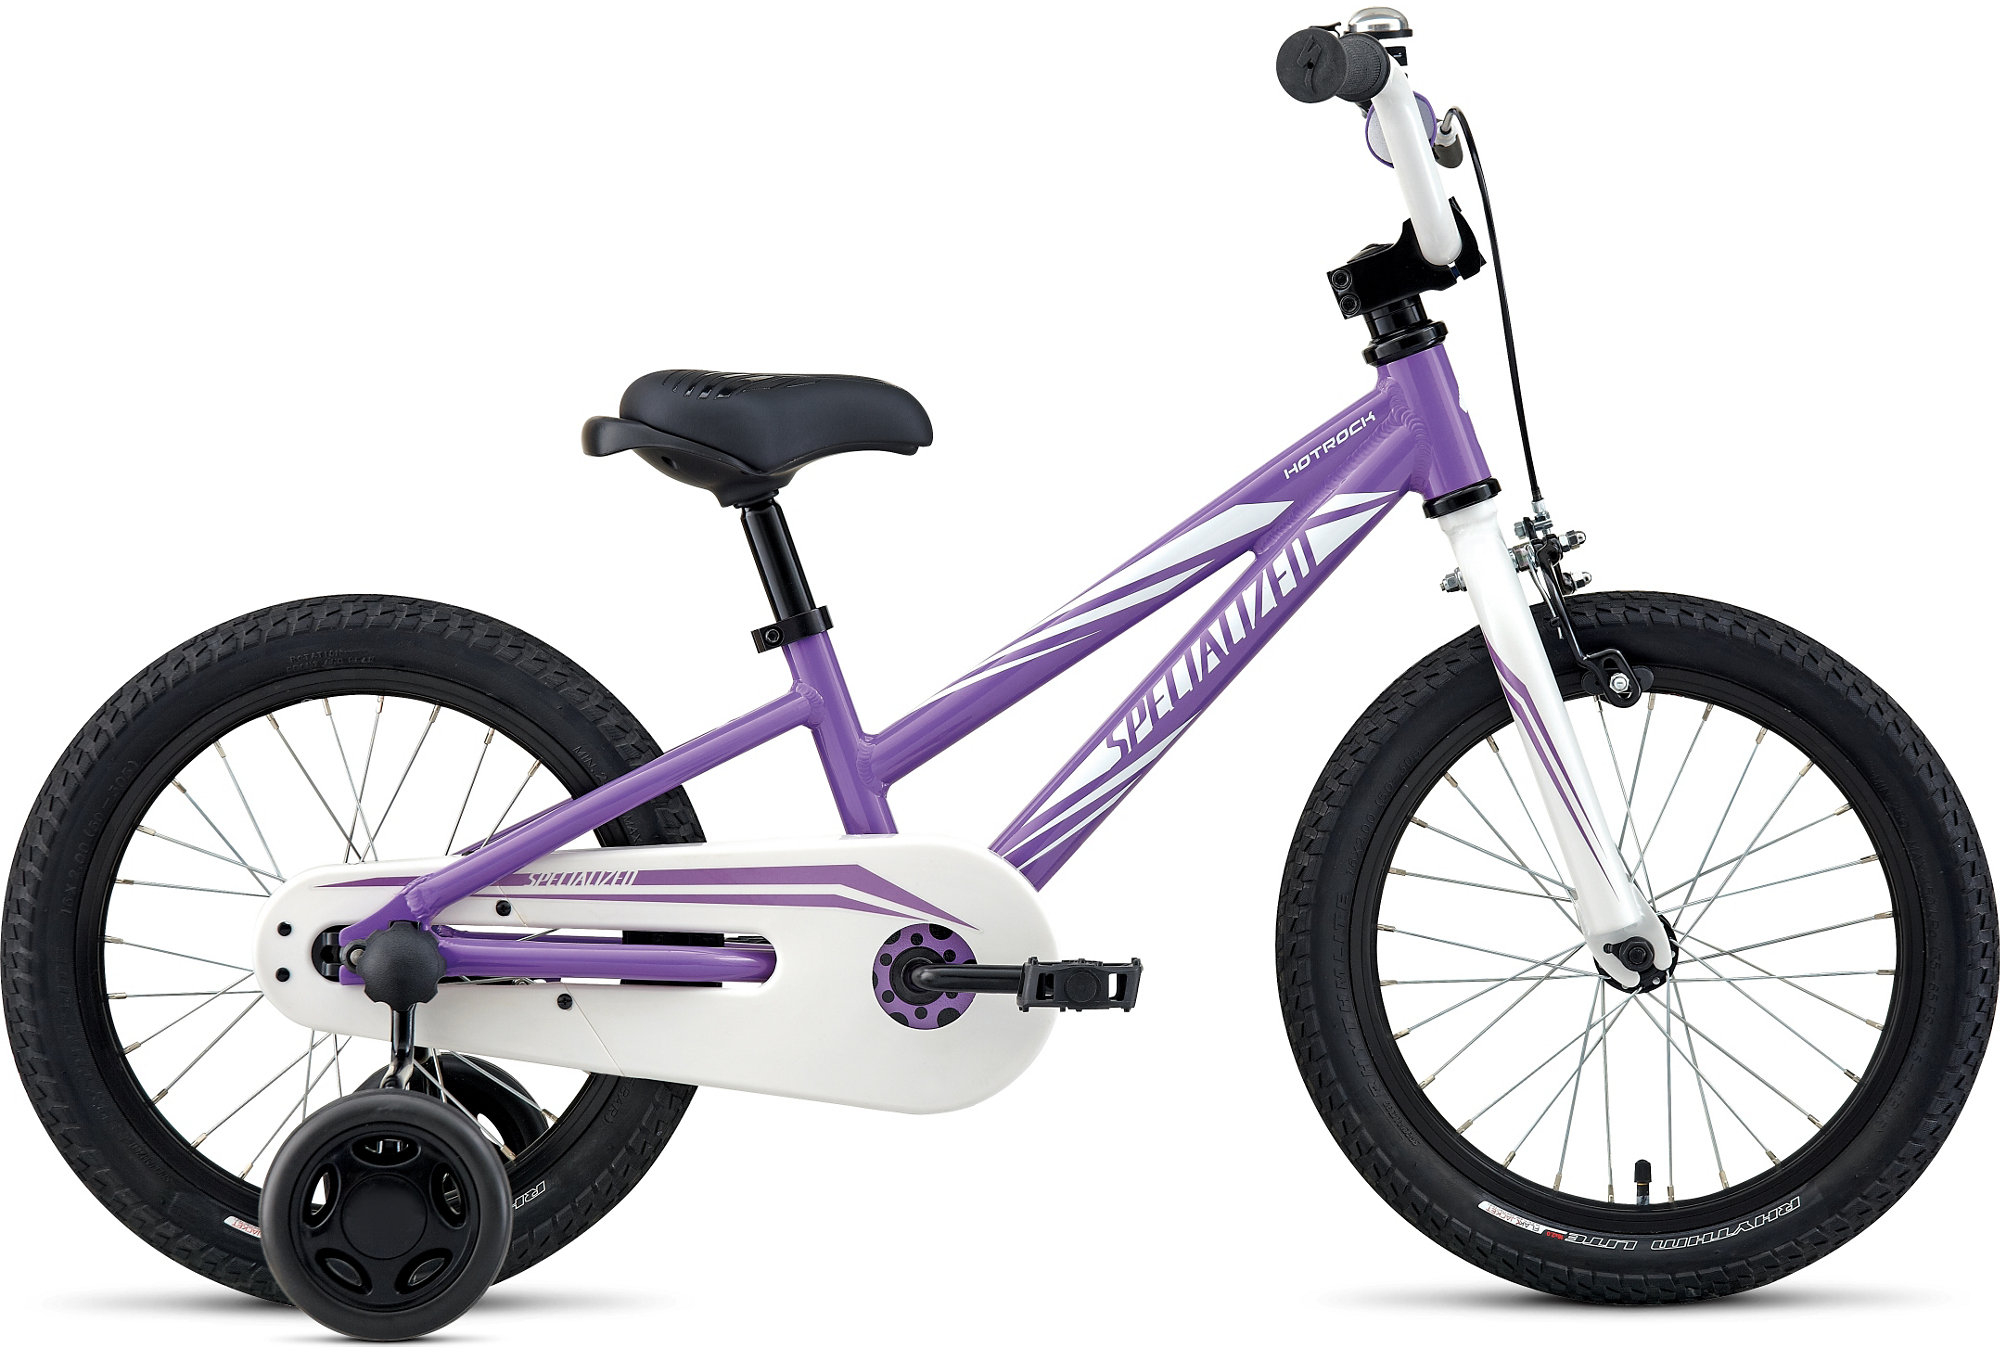 0dbd37a22fd 2015 Specialized Hotrock 16 Coaster Girls - Specialized Concept Store